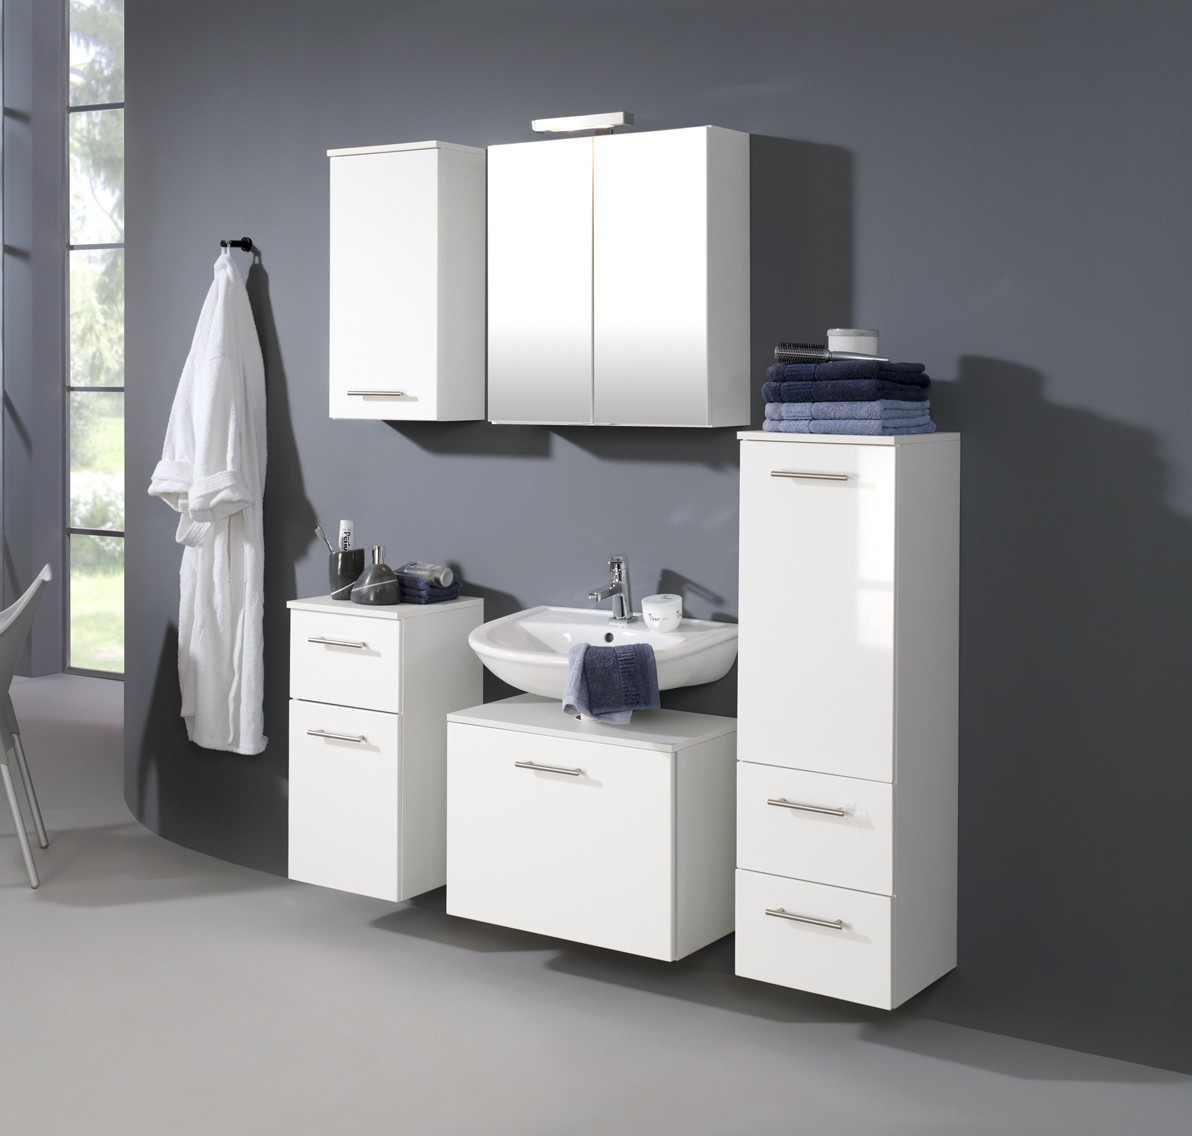 neu badezimmer unterschrank blanco badschrank badezimmerschrank weiss ebay. Black Bedroom Furniture Sets. Home Design Ideas